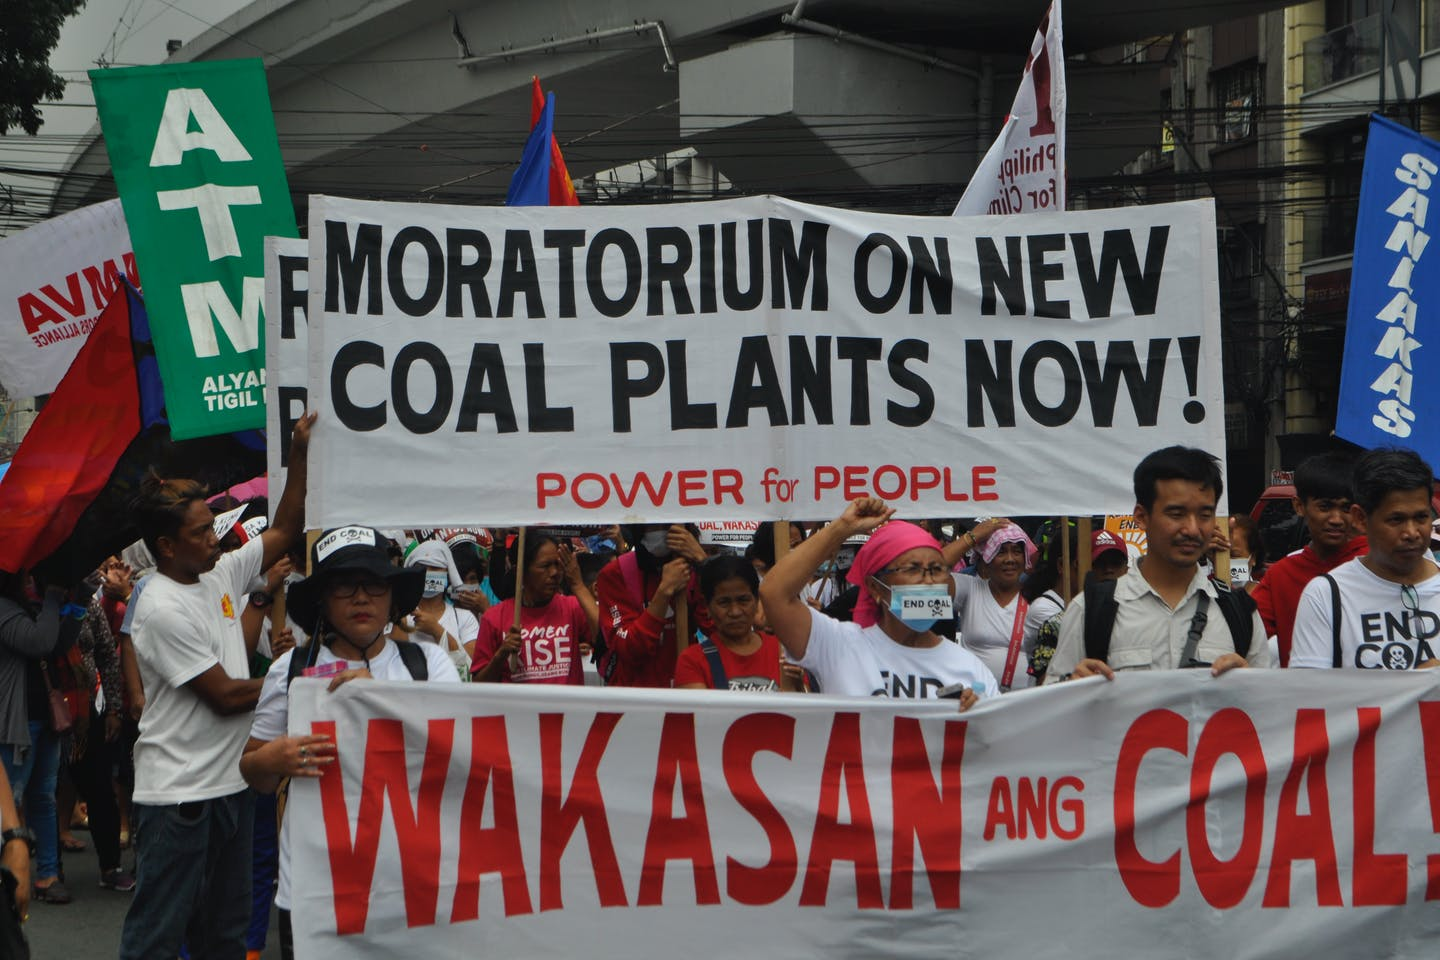 'Moratorium on new coal plants now!' NGOs protest against coal in the Philippines